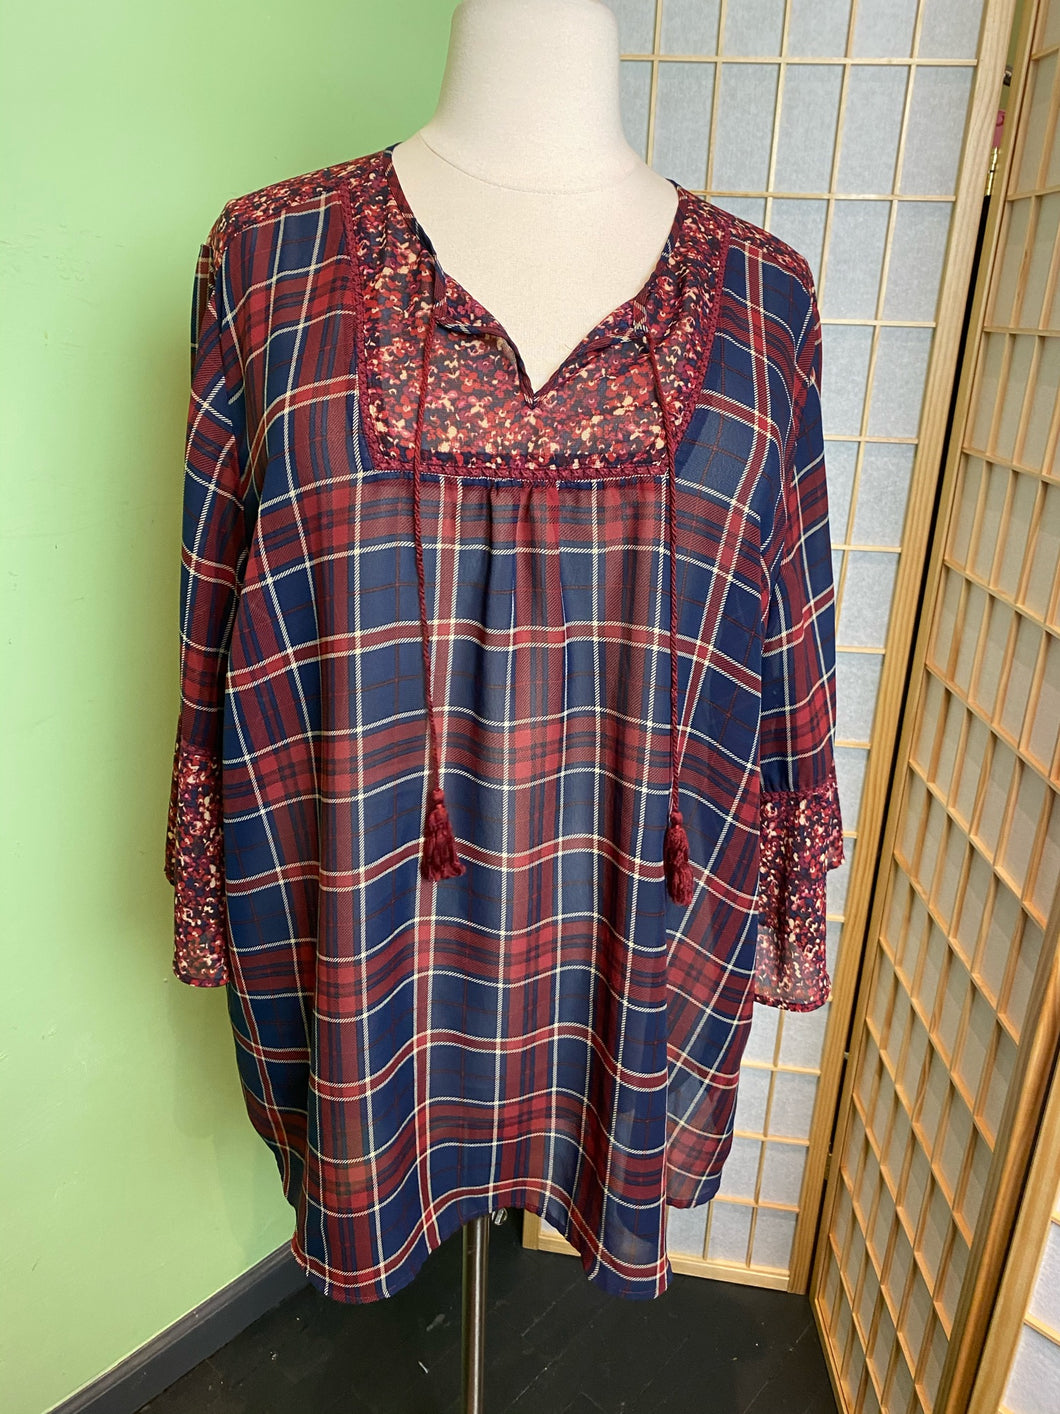 Catherine's Plaid and Lace Top, Size 3X